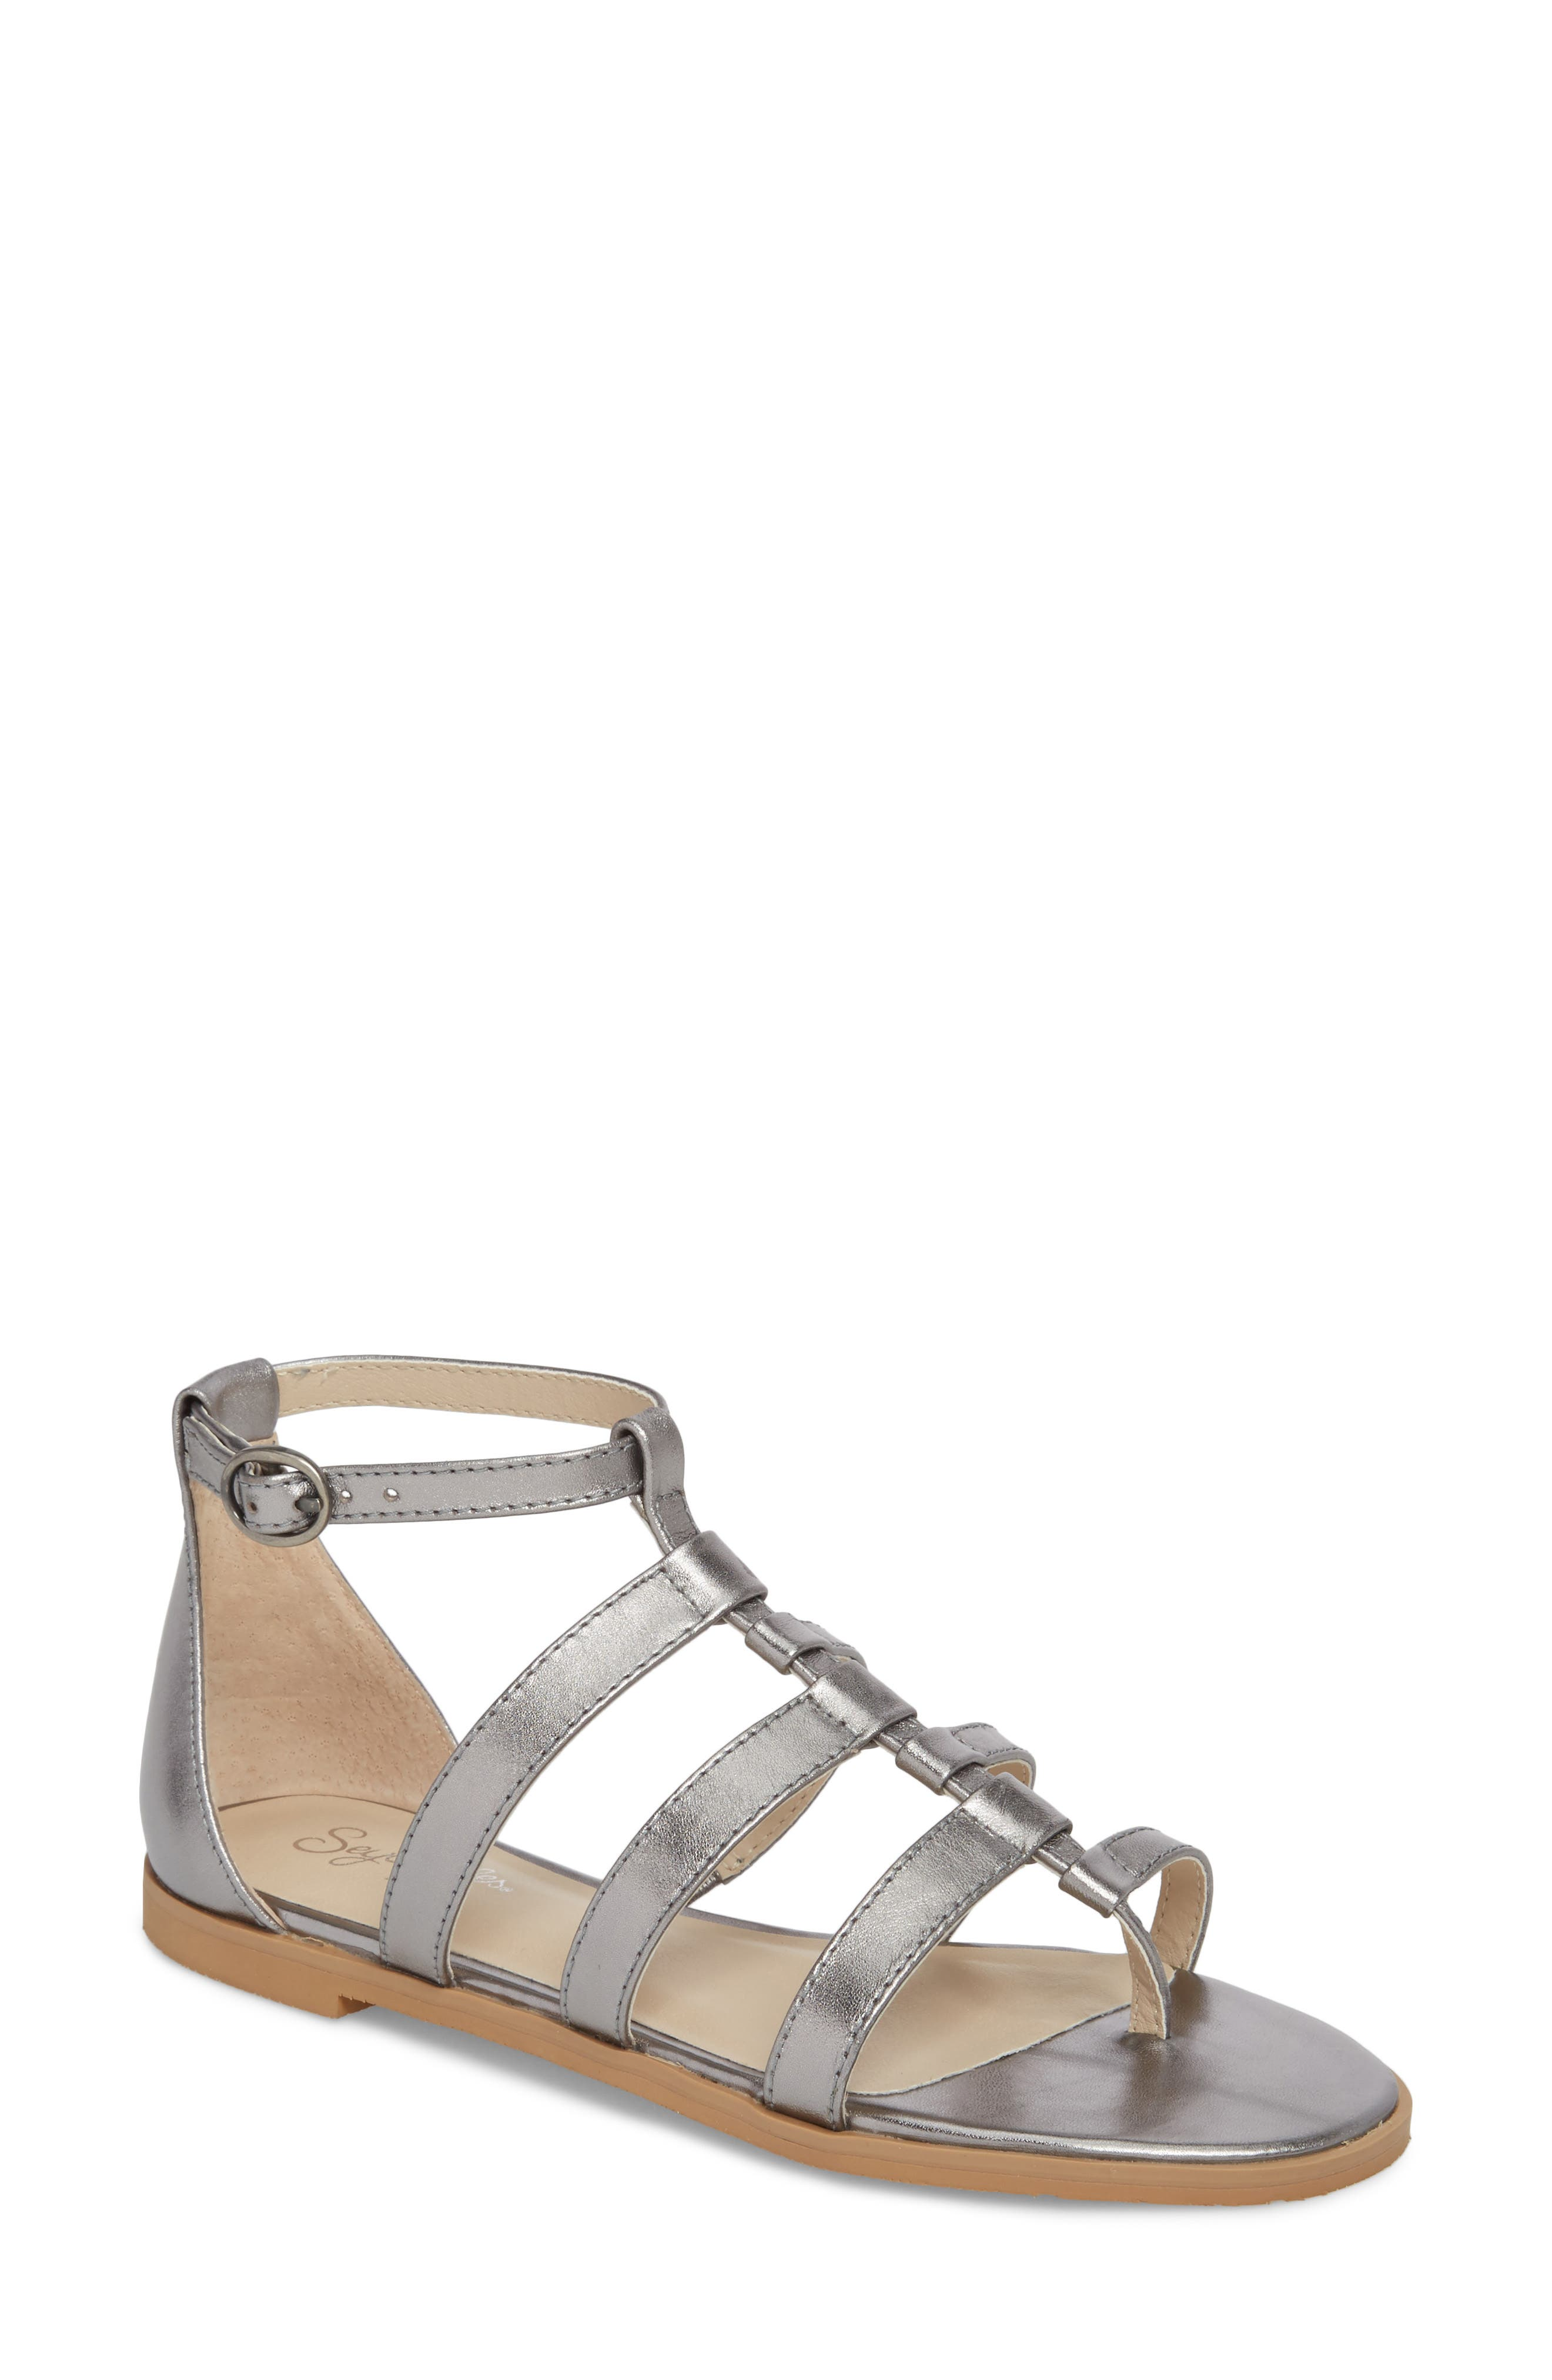 Contribution Sandal,                             Main thumbnail 1, color,                             Pewter Leather